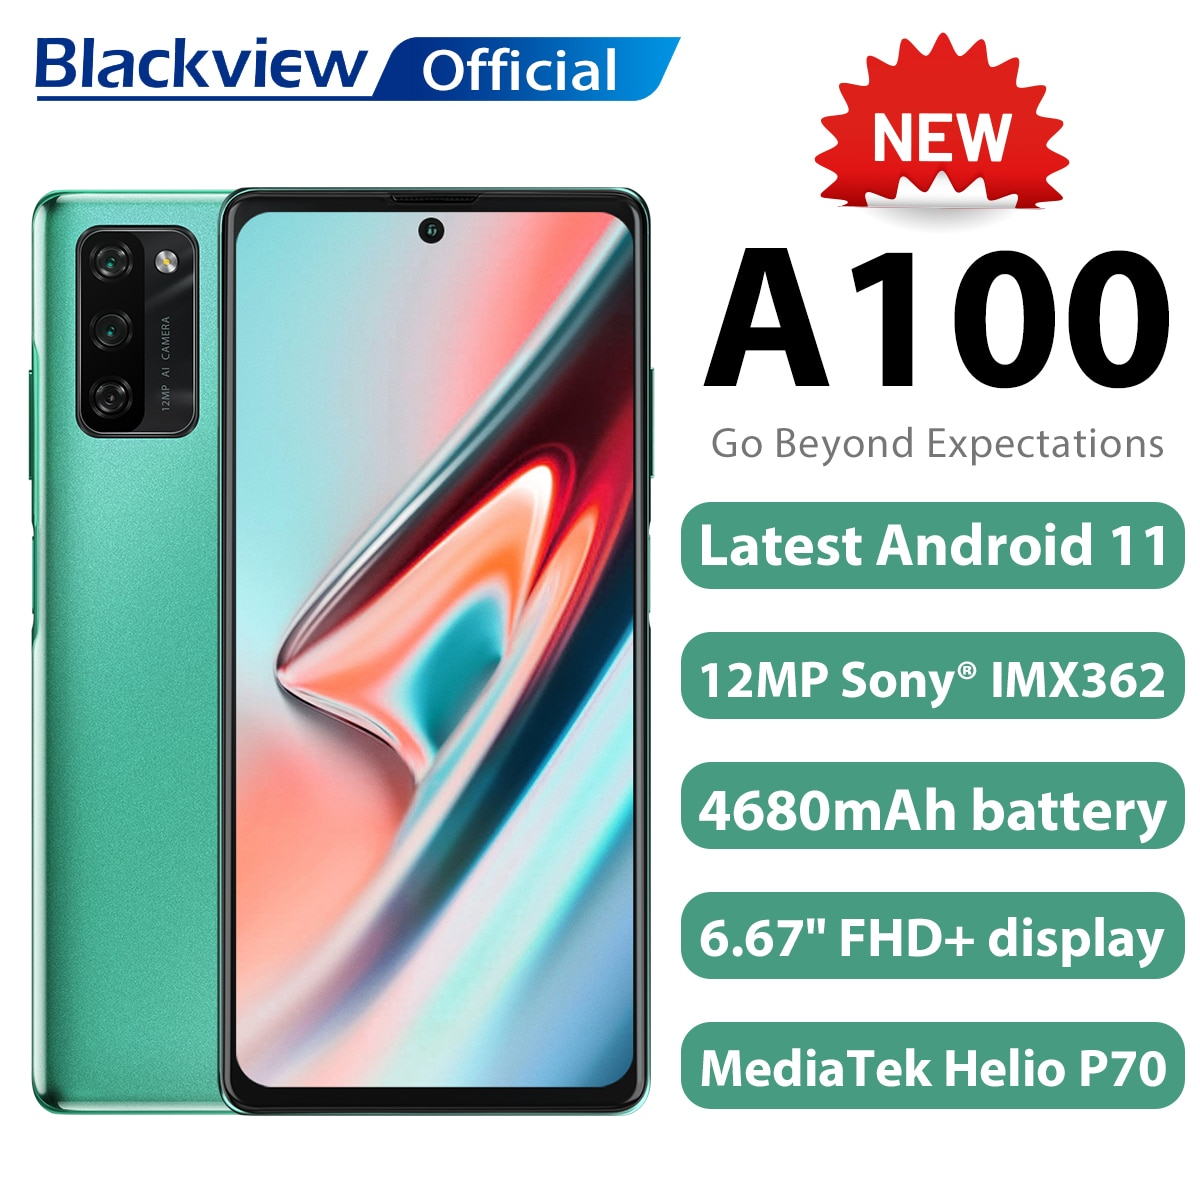 Blackview A100 Android 11 Smartphone 6GB+128GB Helio P70 6.67